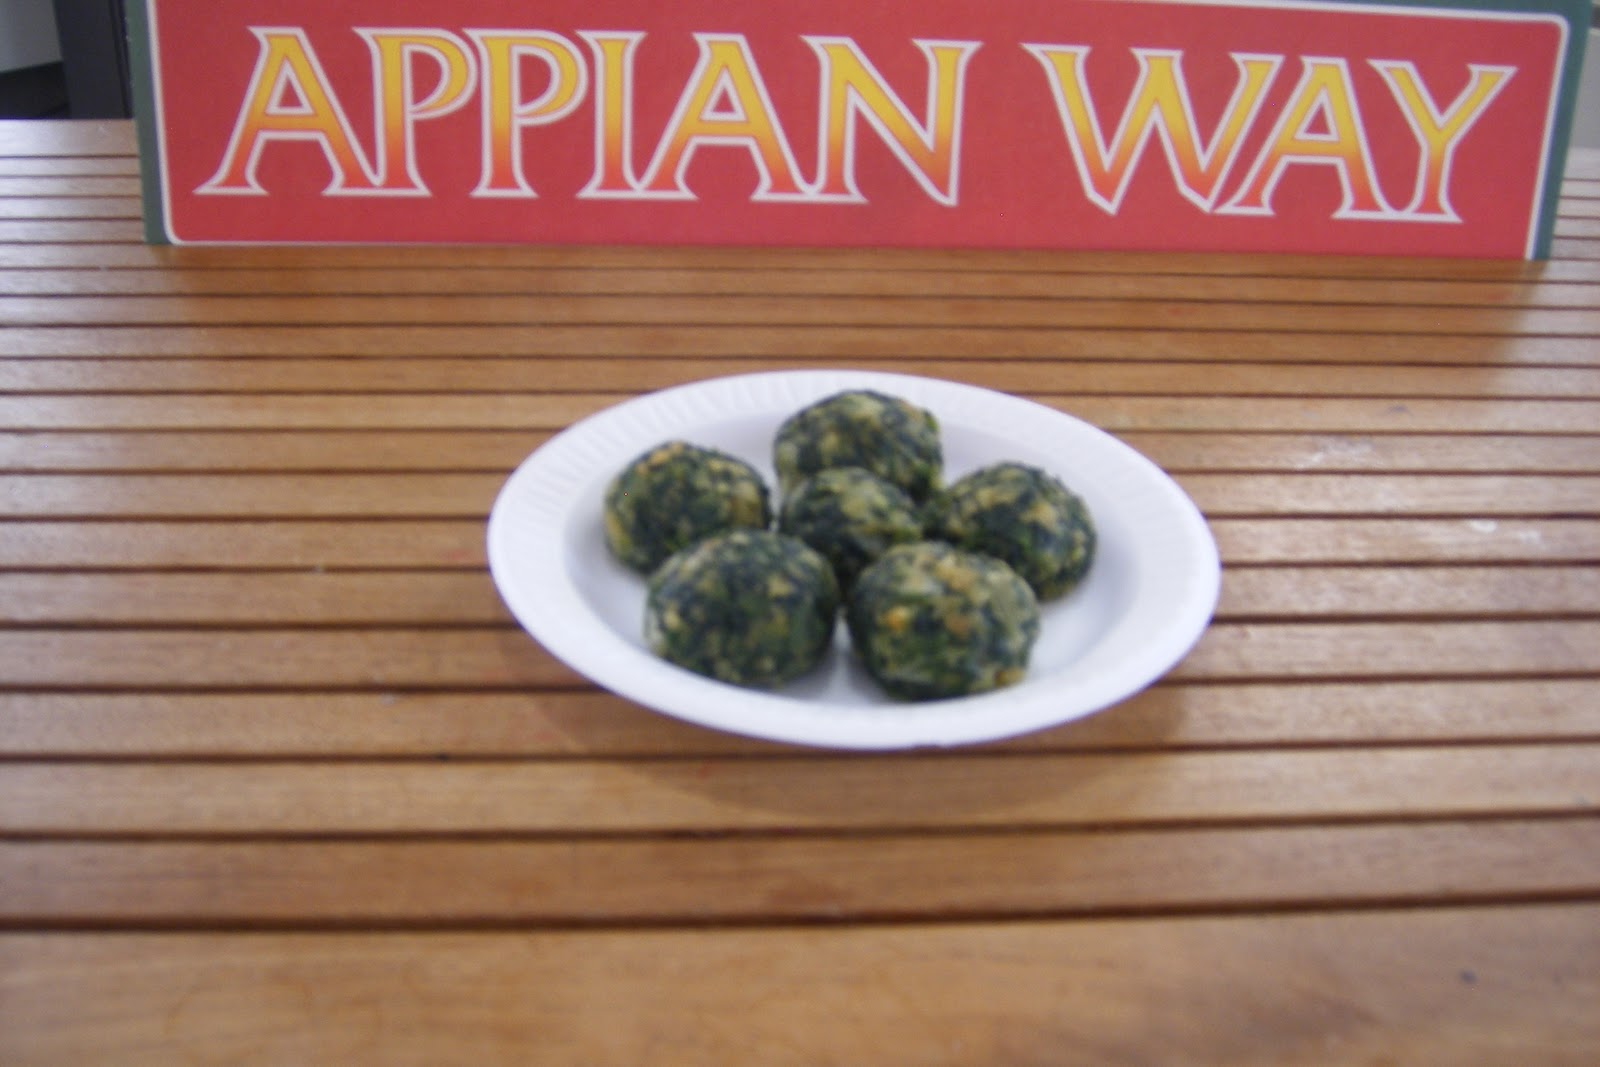 Seasoned Spinach Balls made by Kathy